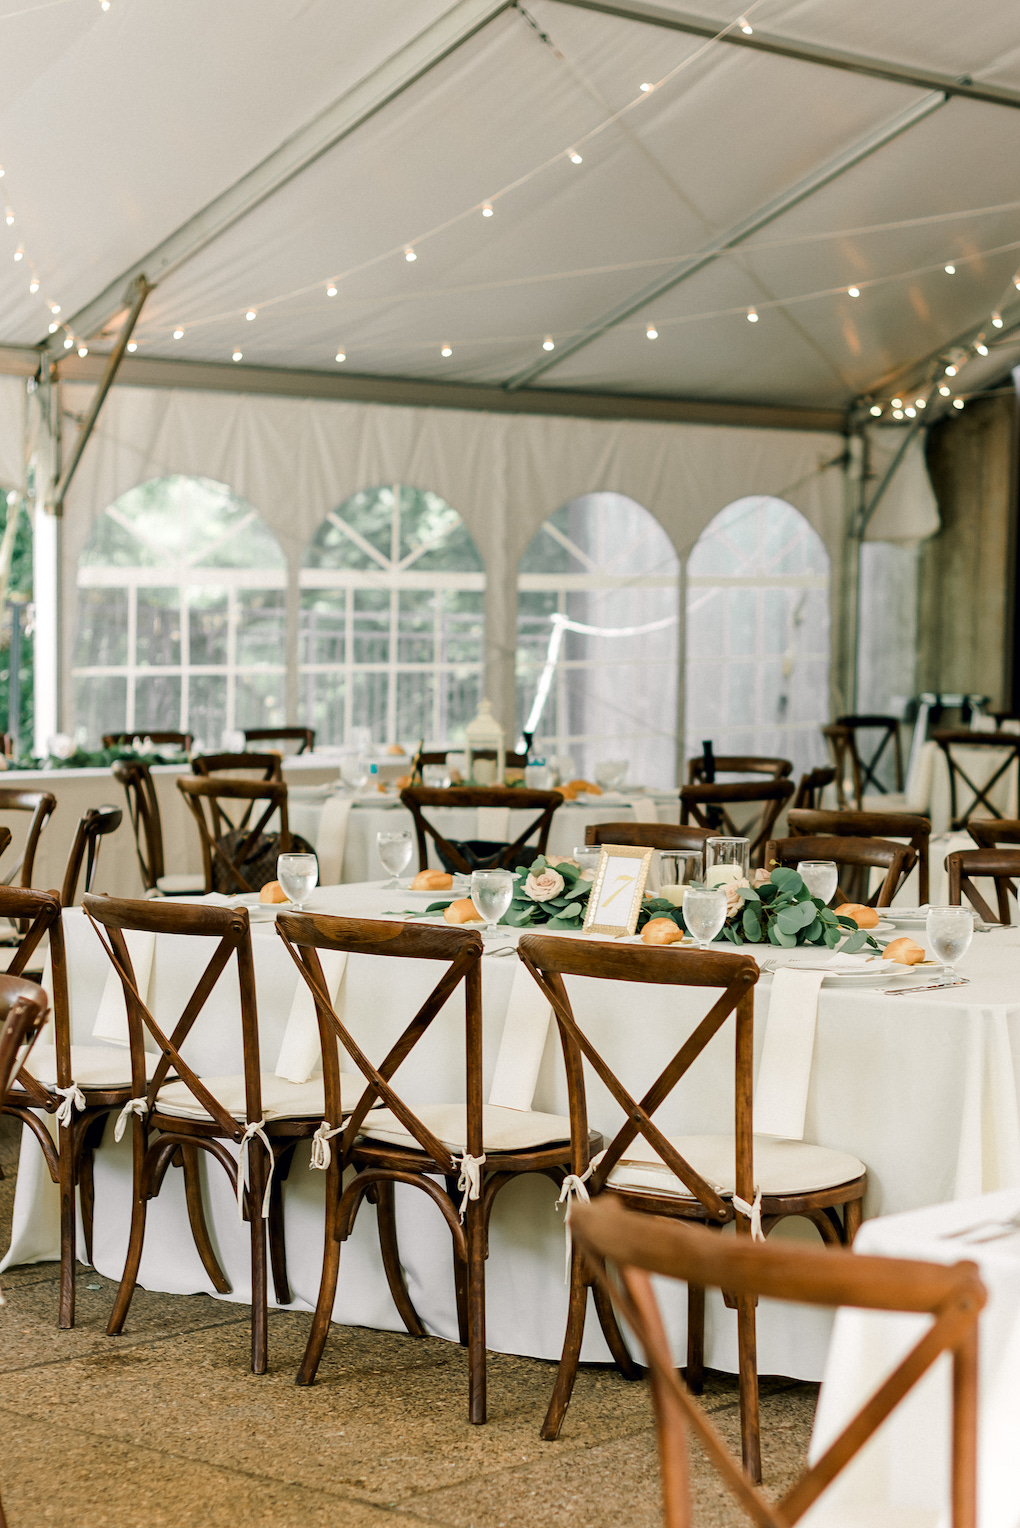 Farm chairs for outdoor wedding ceremony: Romantic Delicate Summer Wedding in Pittsburgh planned by Exhale Events. See more at exhale-events.com!